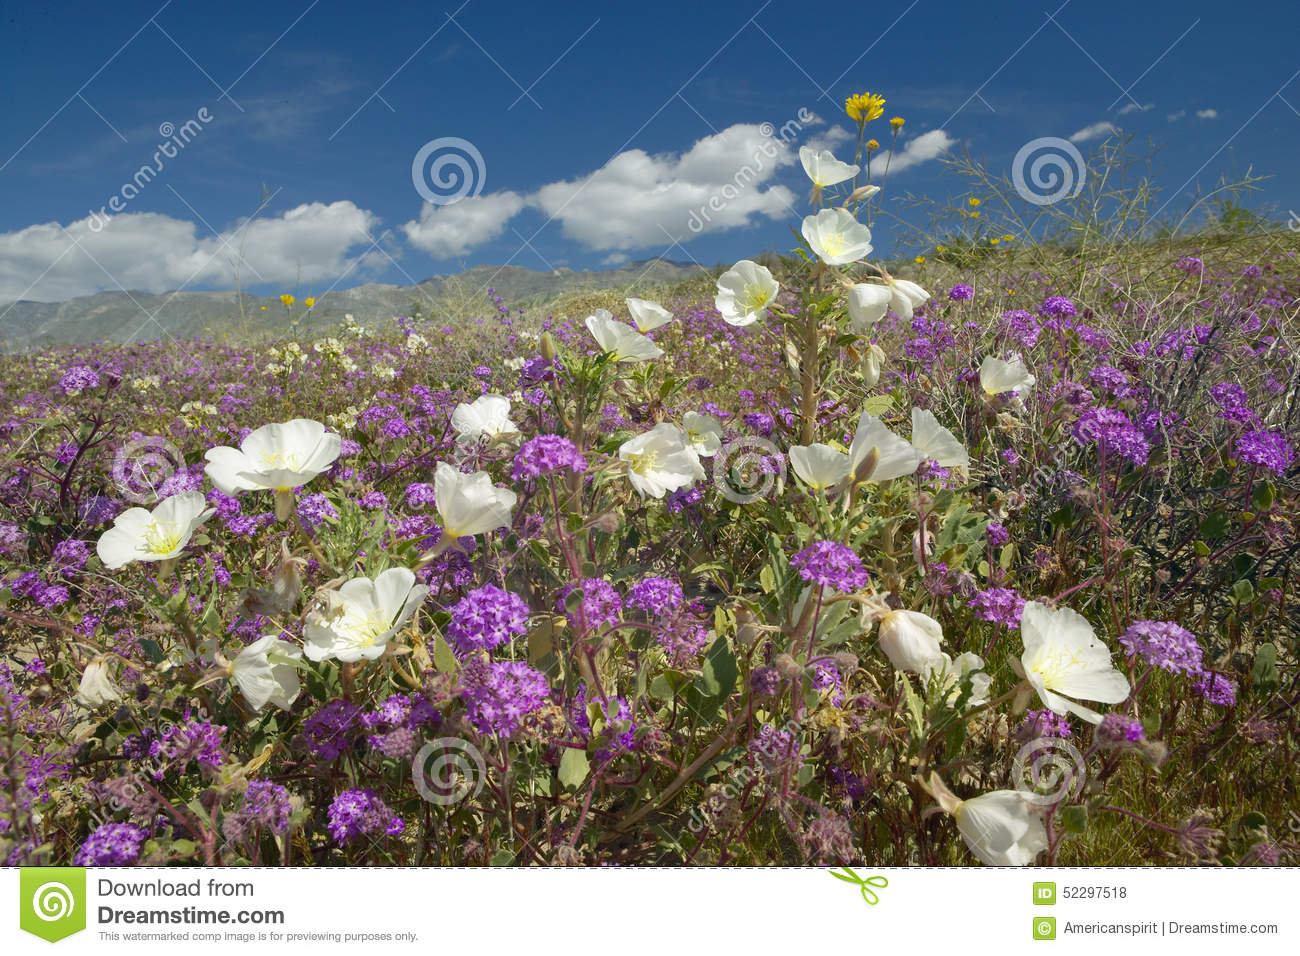 desert lilies and white flowers blossoming with white puffy clouds